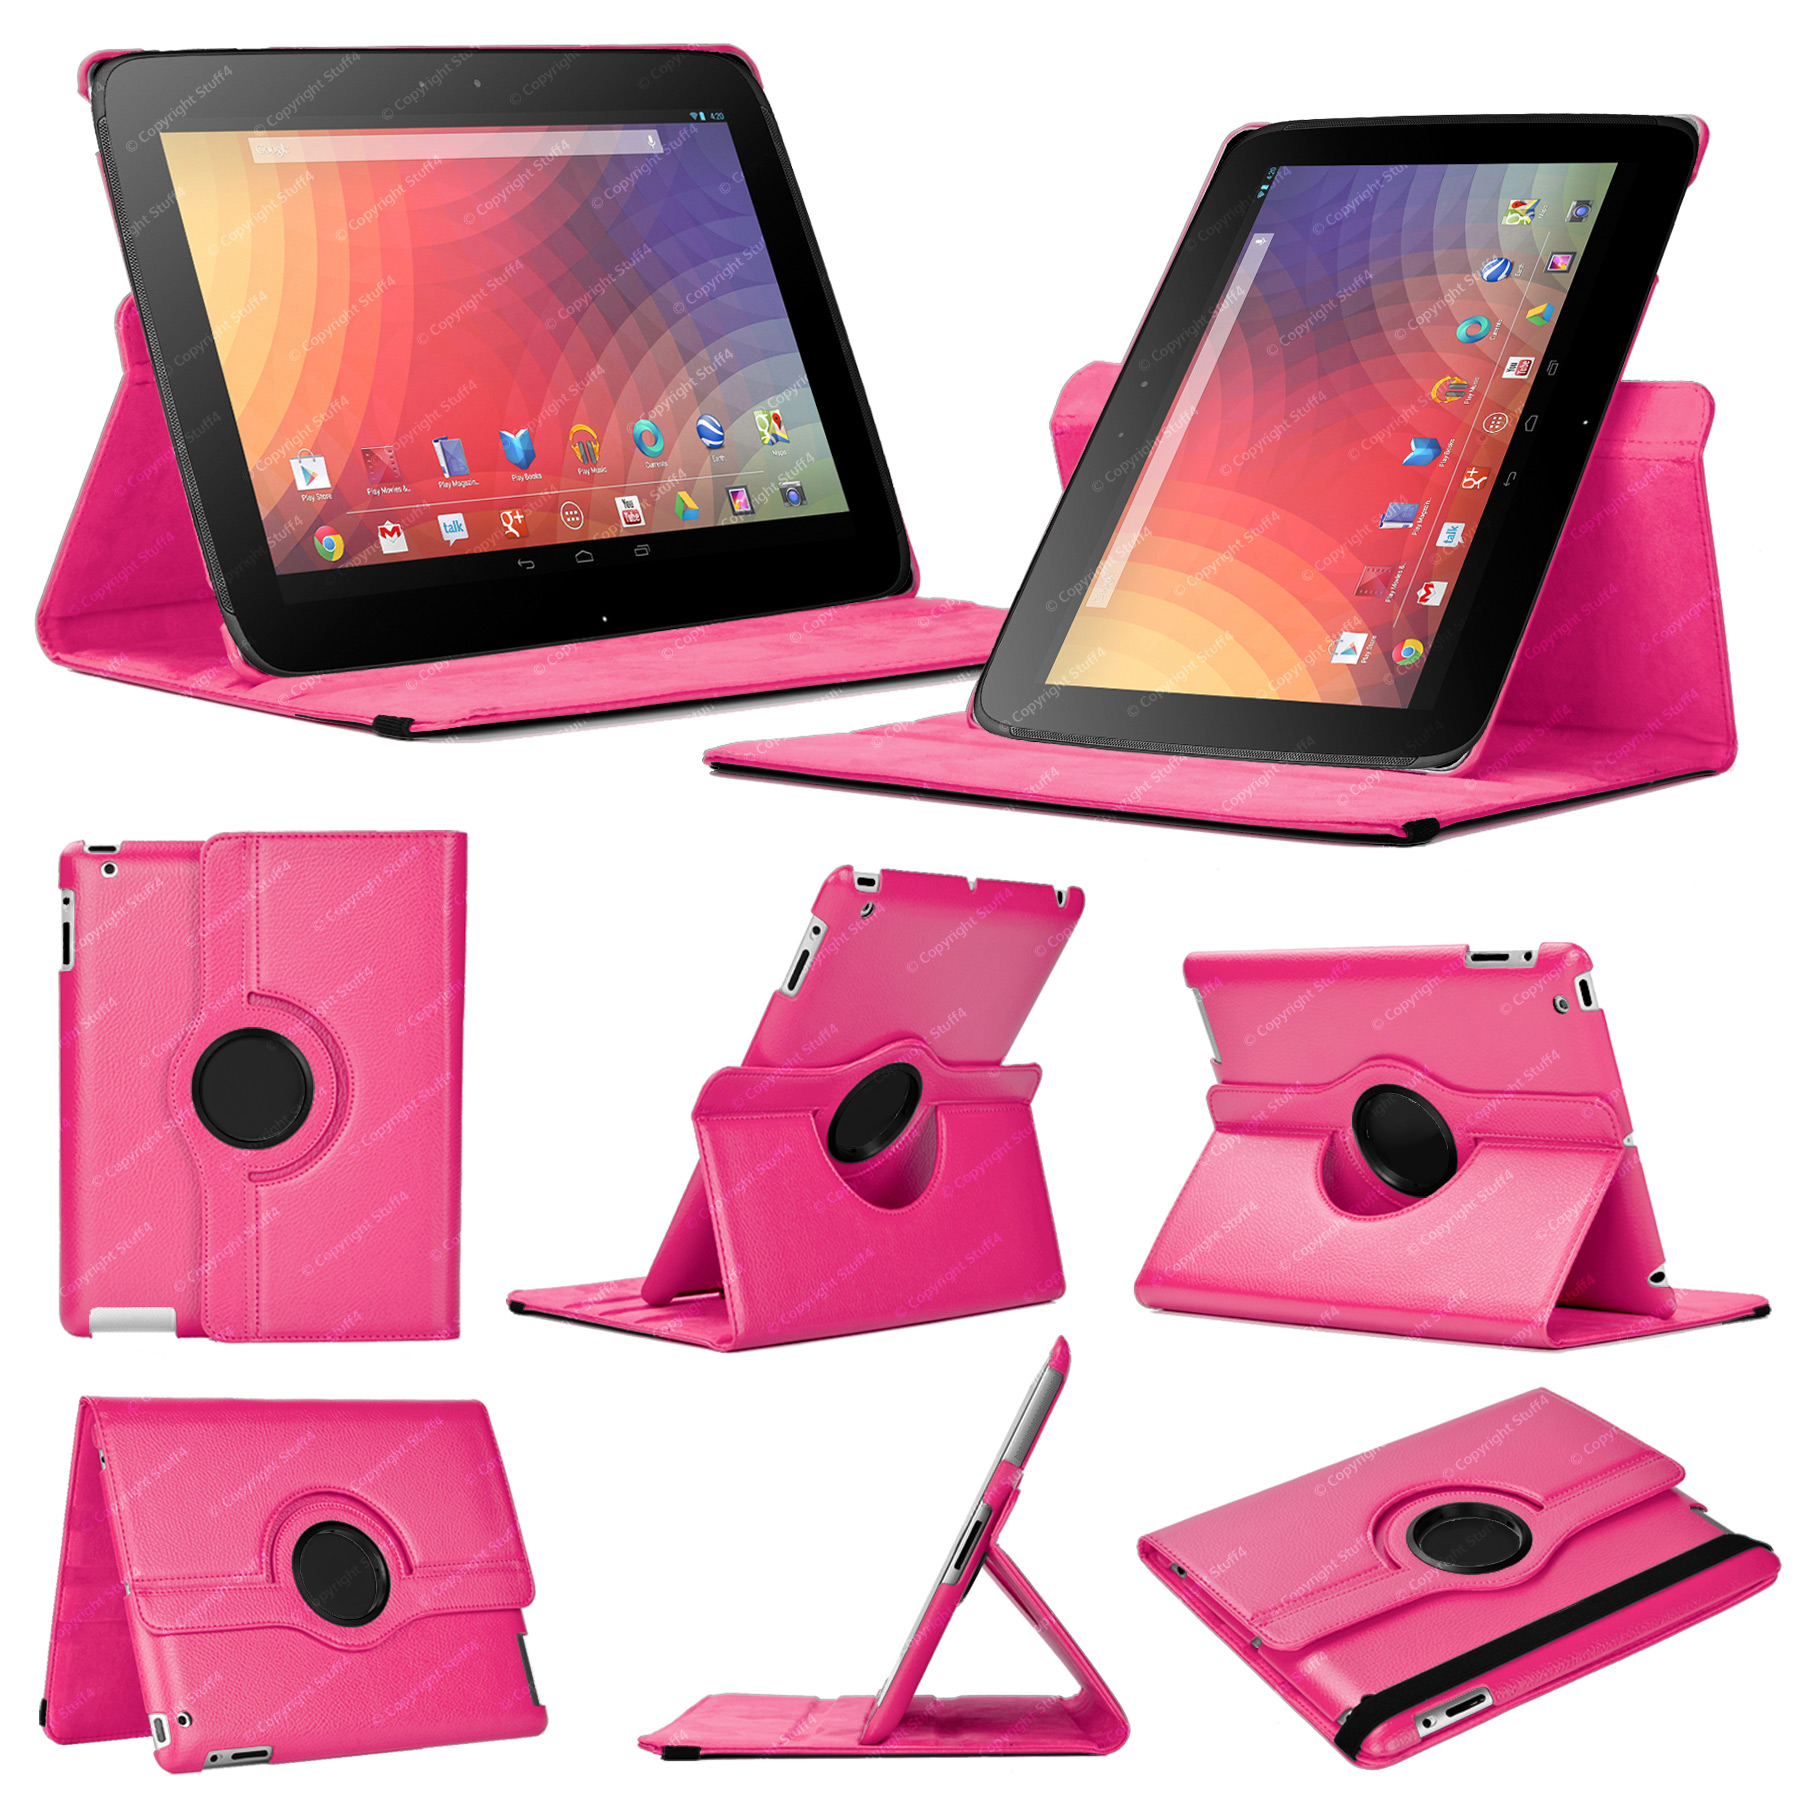 CASE-FOR-ASUS-GOOGLE-NEXUS-NOOK-HD-TABLETS-7-10-INCH-360-SMART-COVER-STAND